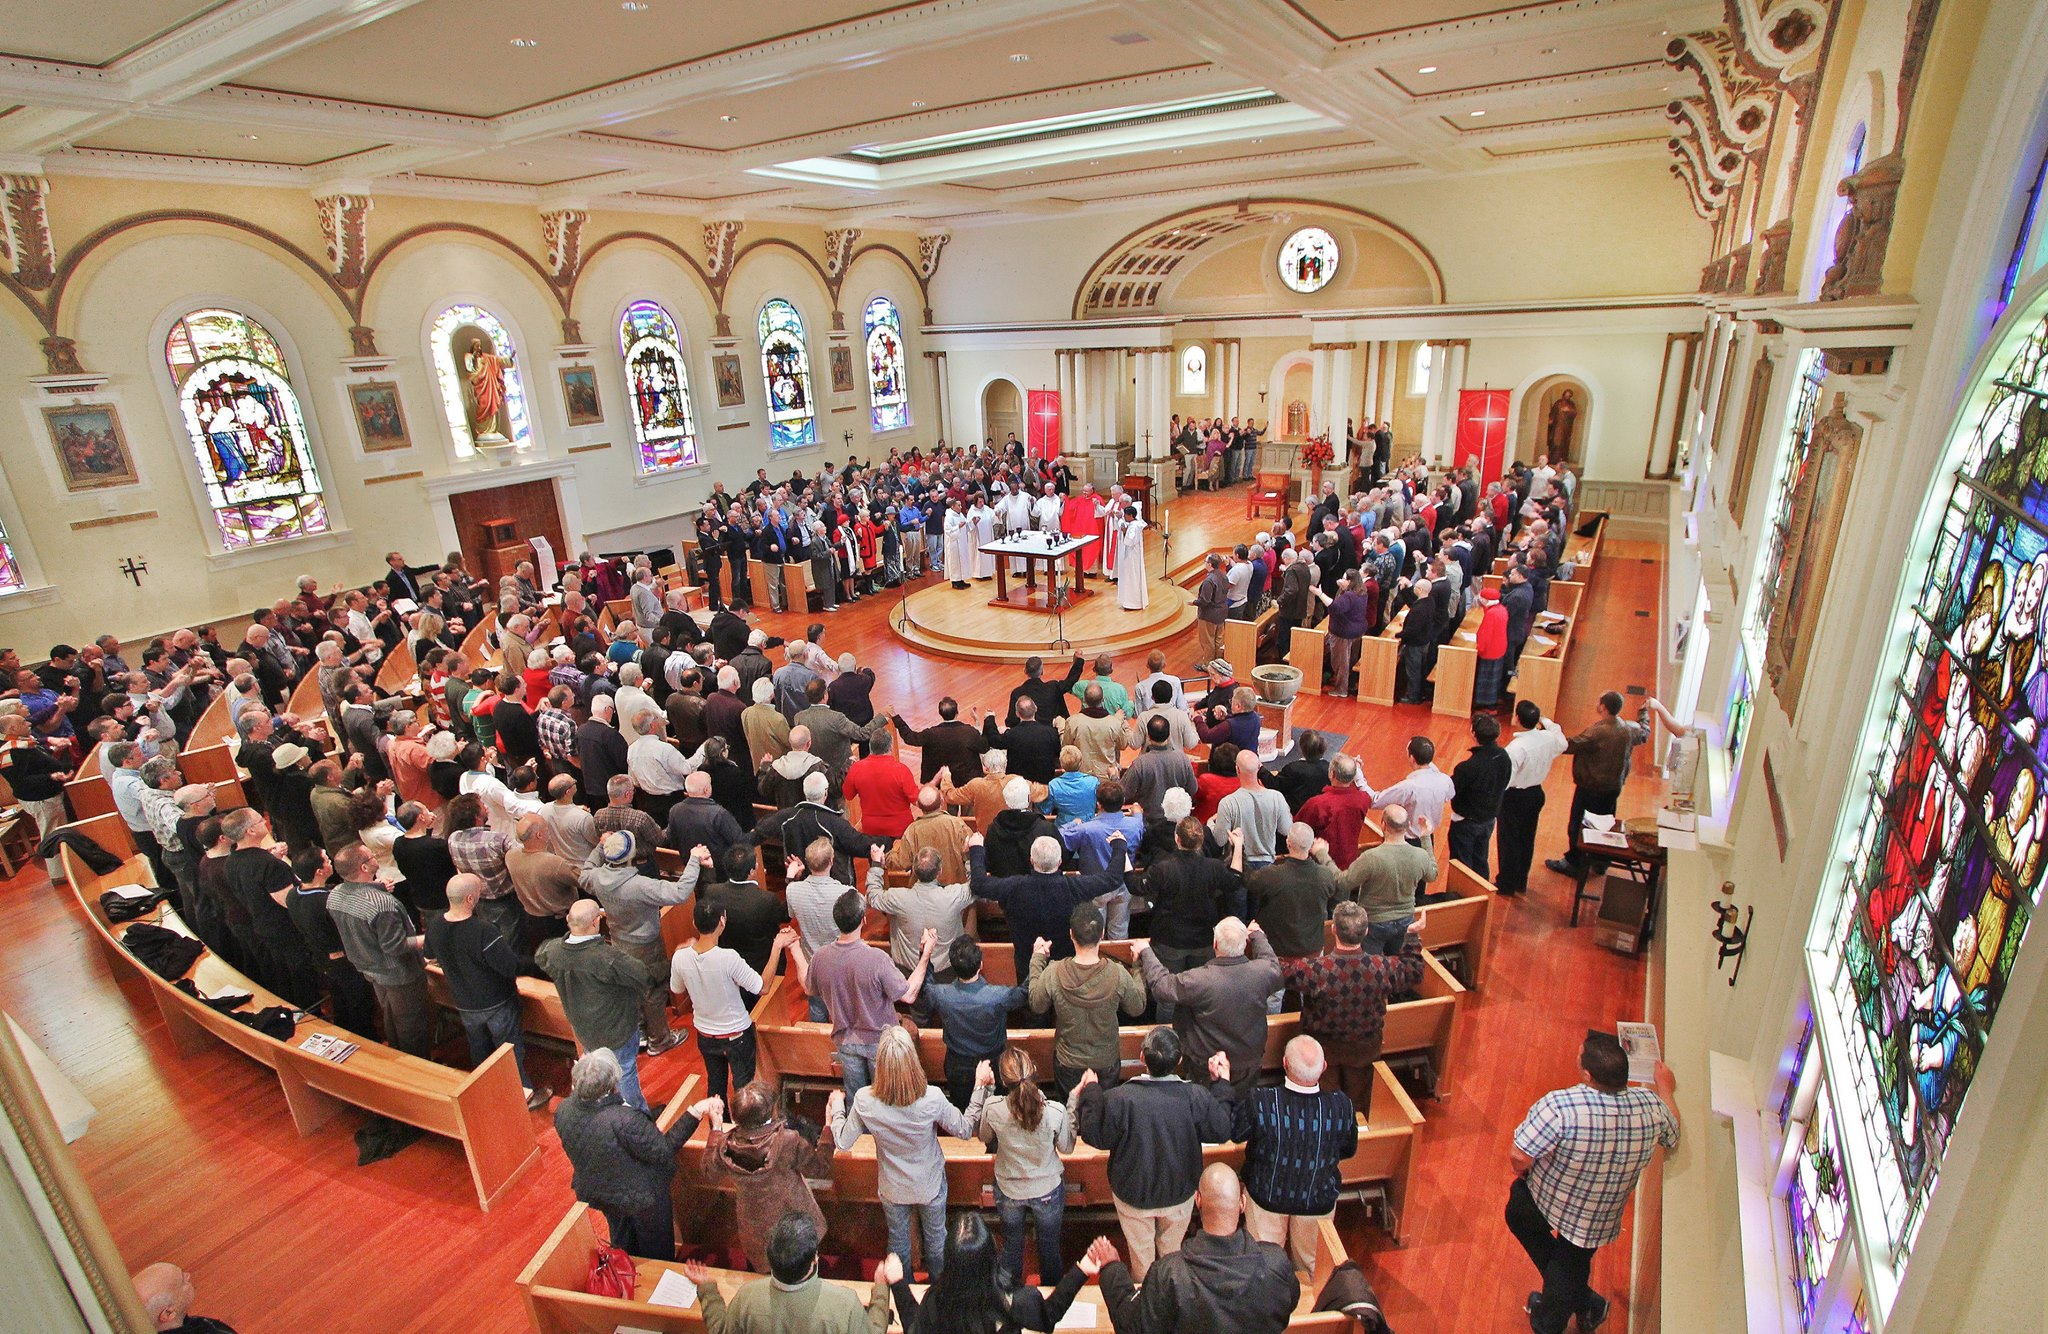 church congregation birds eye view